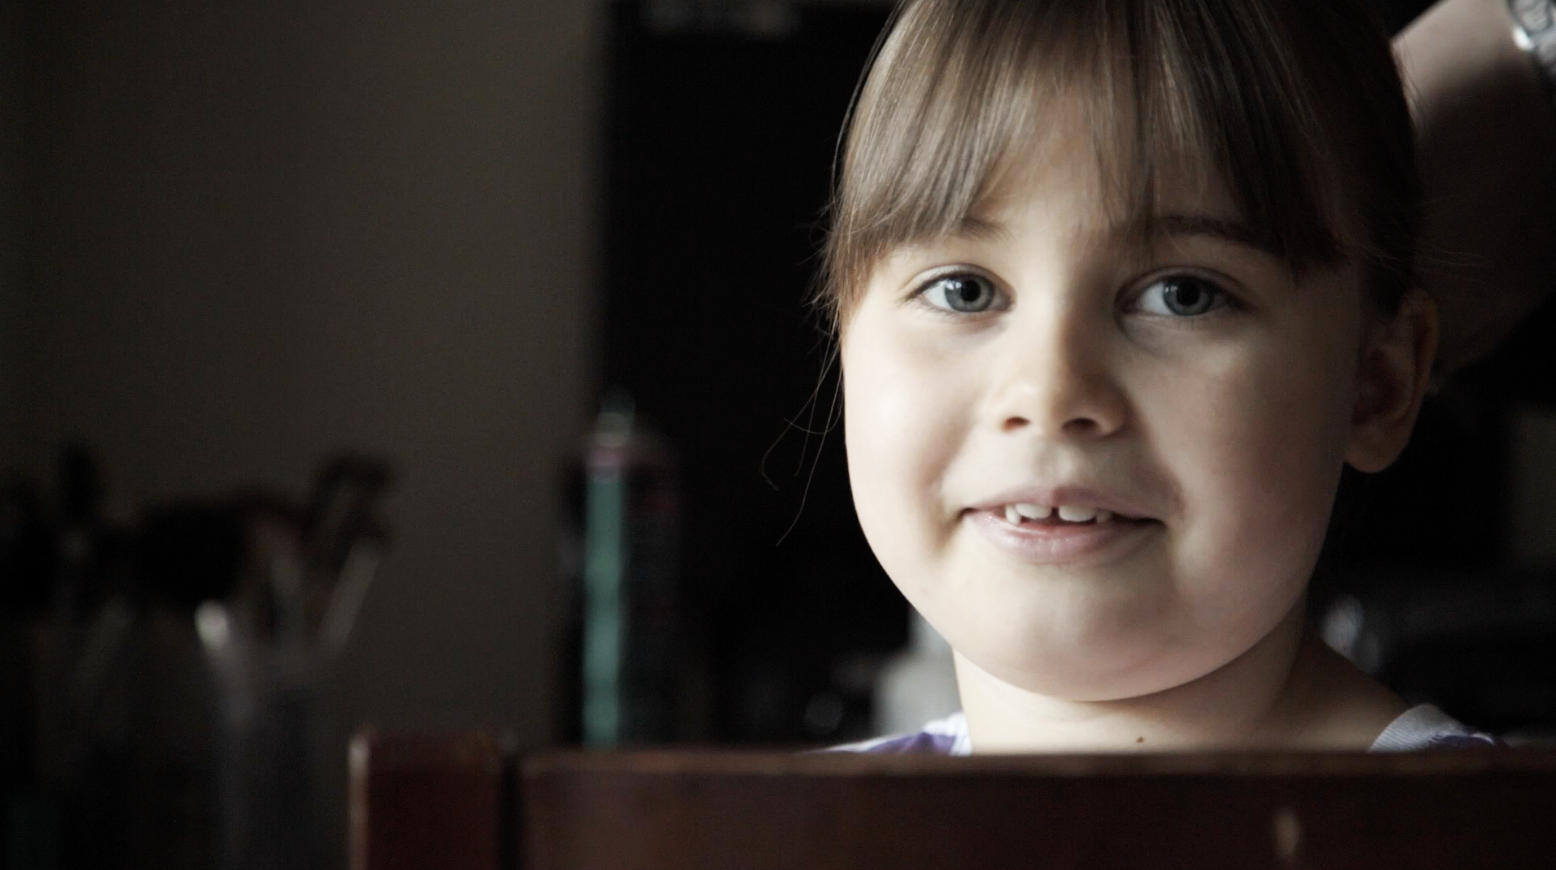 NPOWER - HOW WE MADE LISA'S STORY